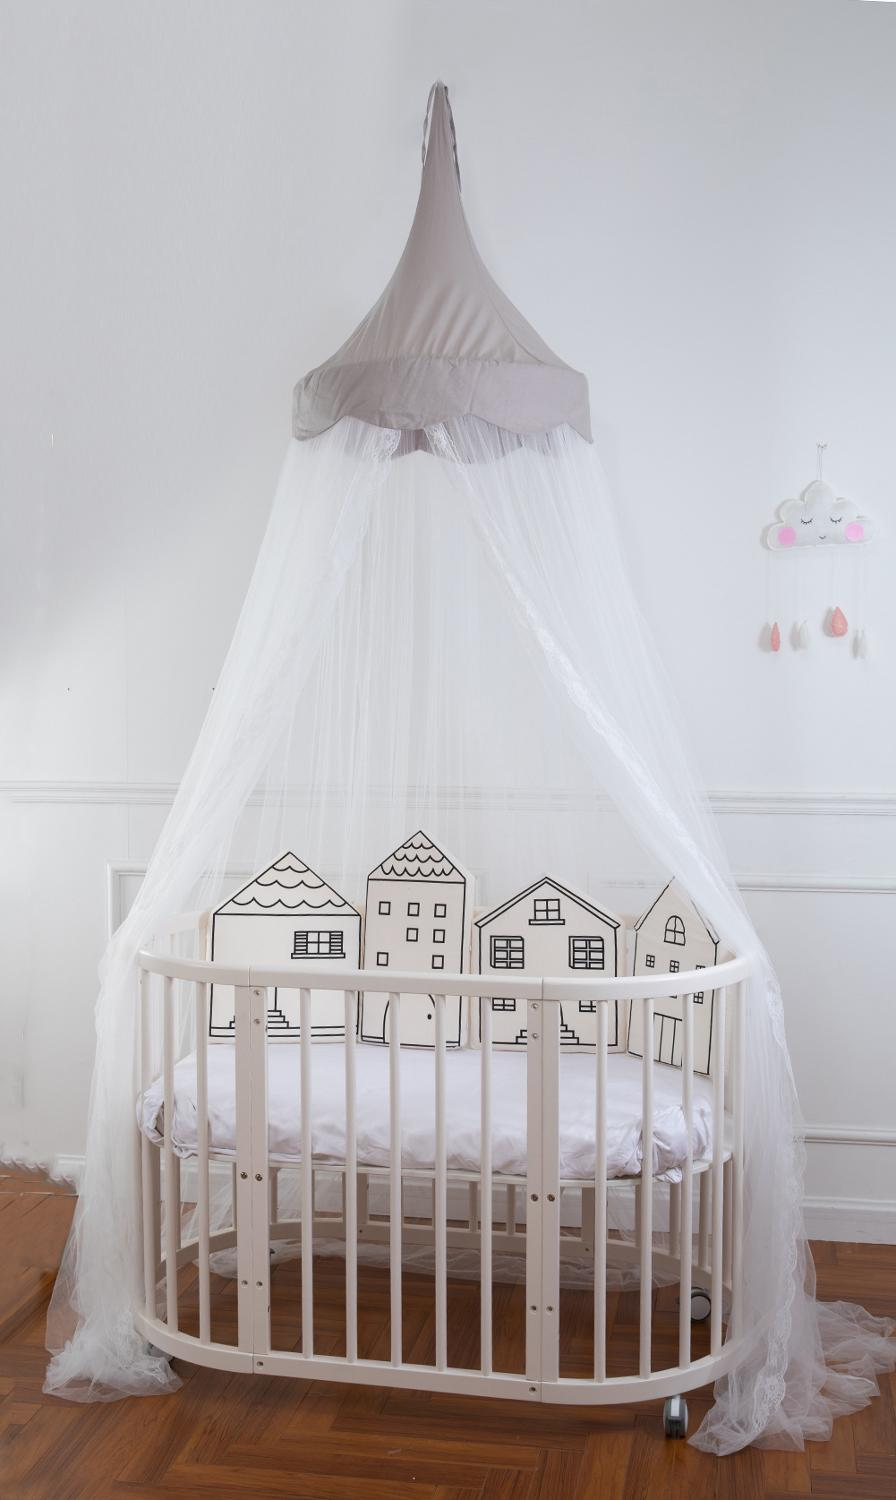 - Baby Double Color Lace Bed Canopy Mosquito Net Bed Crib Netting